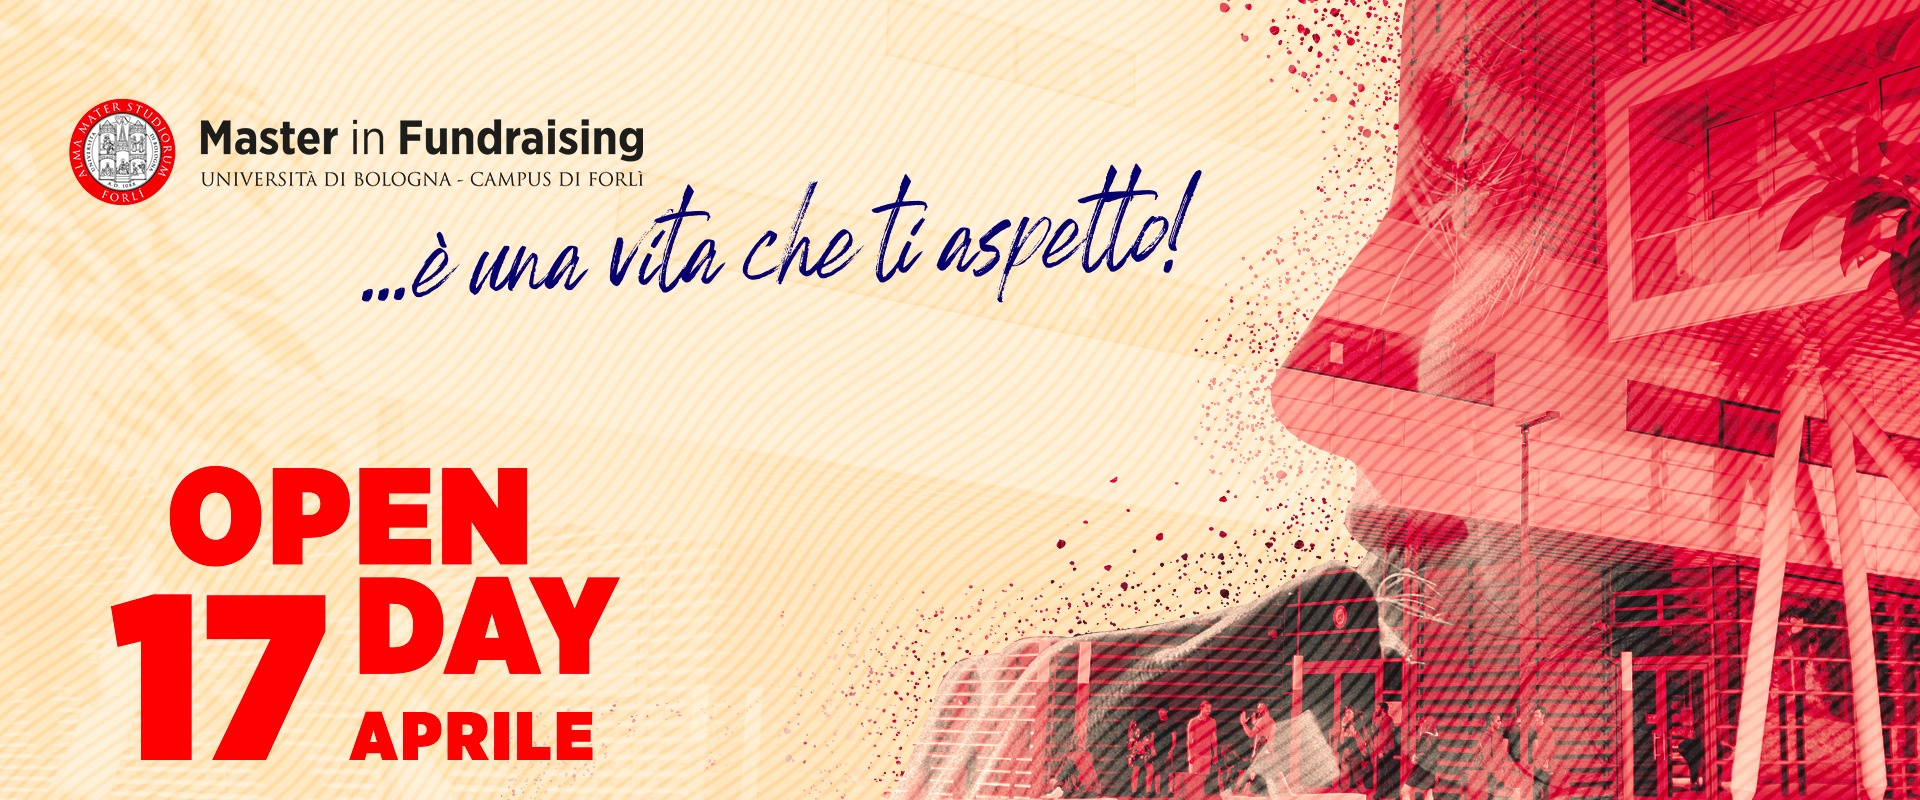 Openday 17 aprile 2020